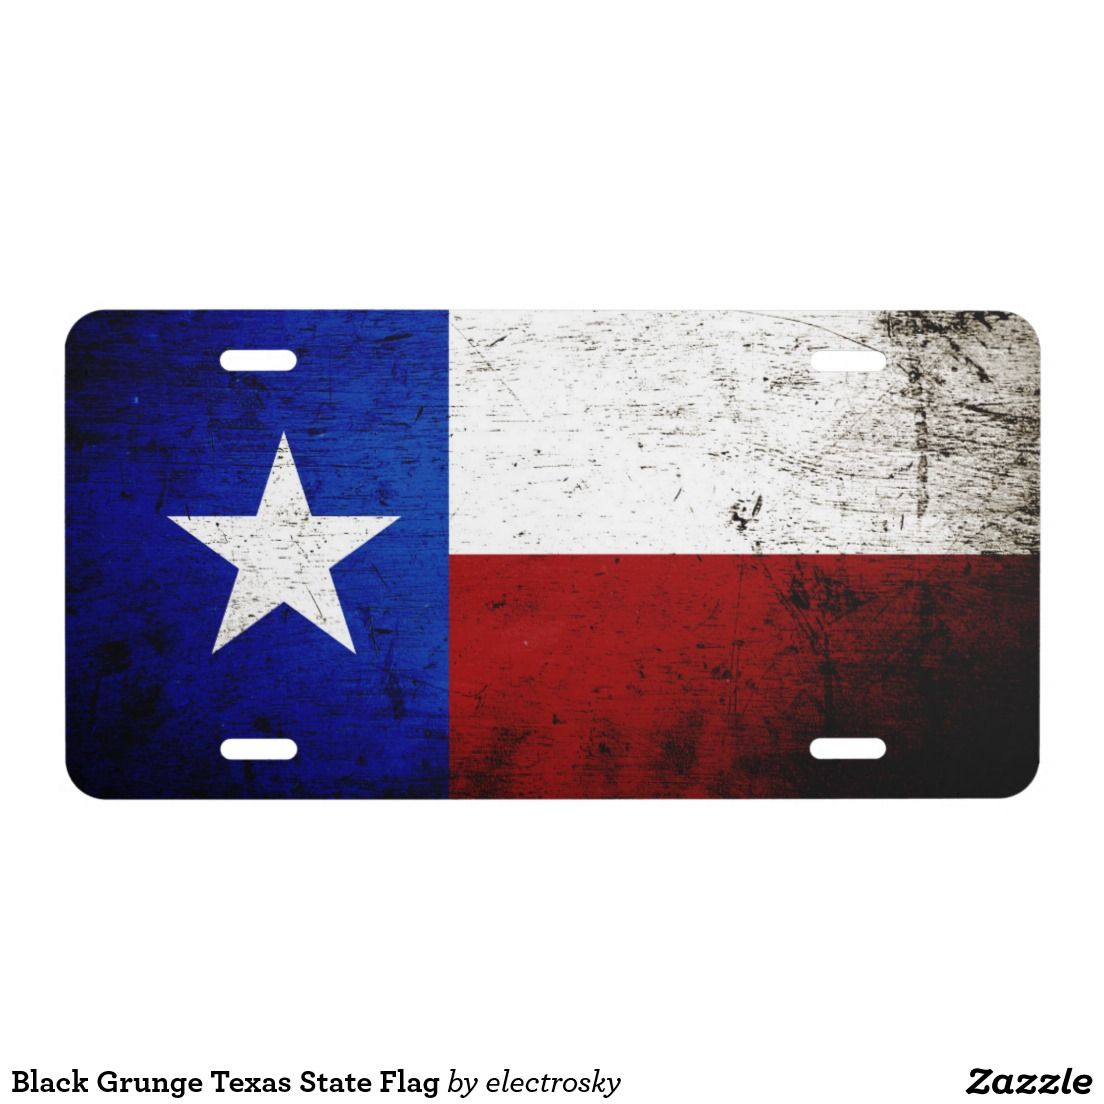 Black Grunge Texas State Flag License Plate Zazzle Com Texas State Flag Black Grunge State Flags